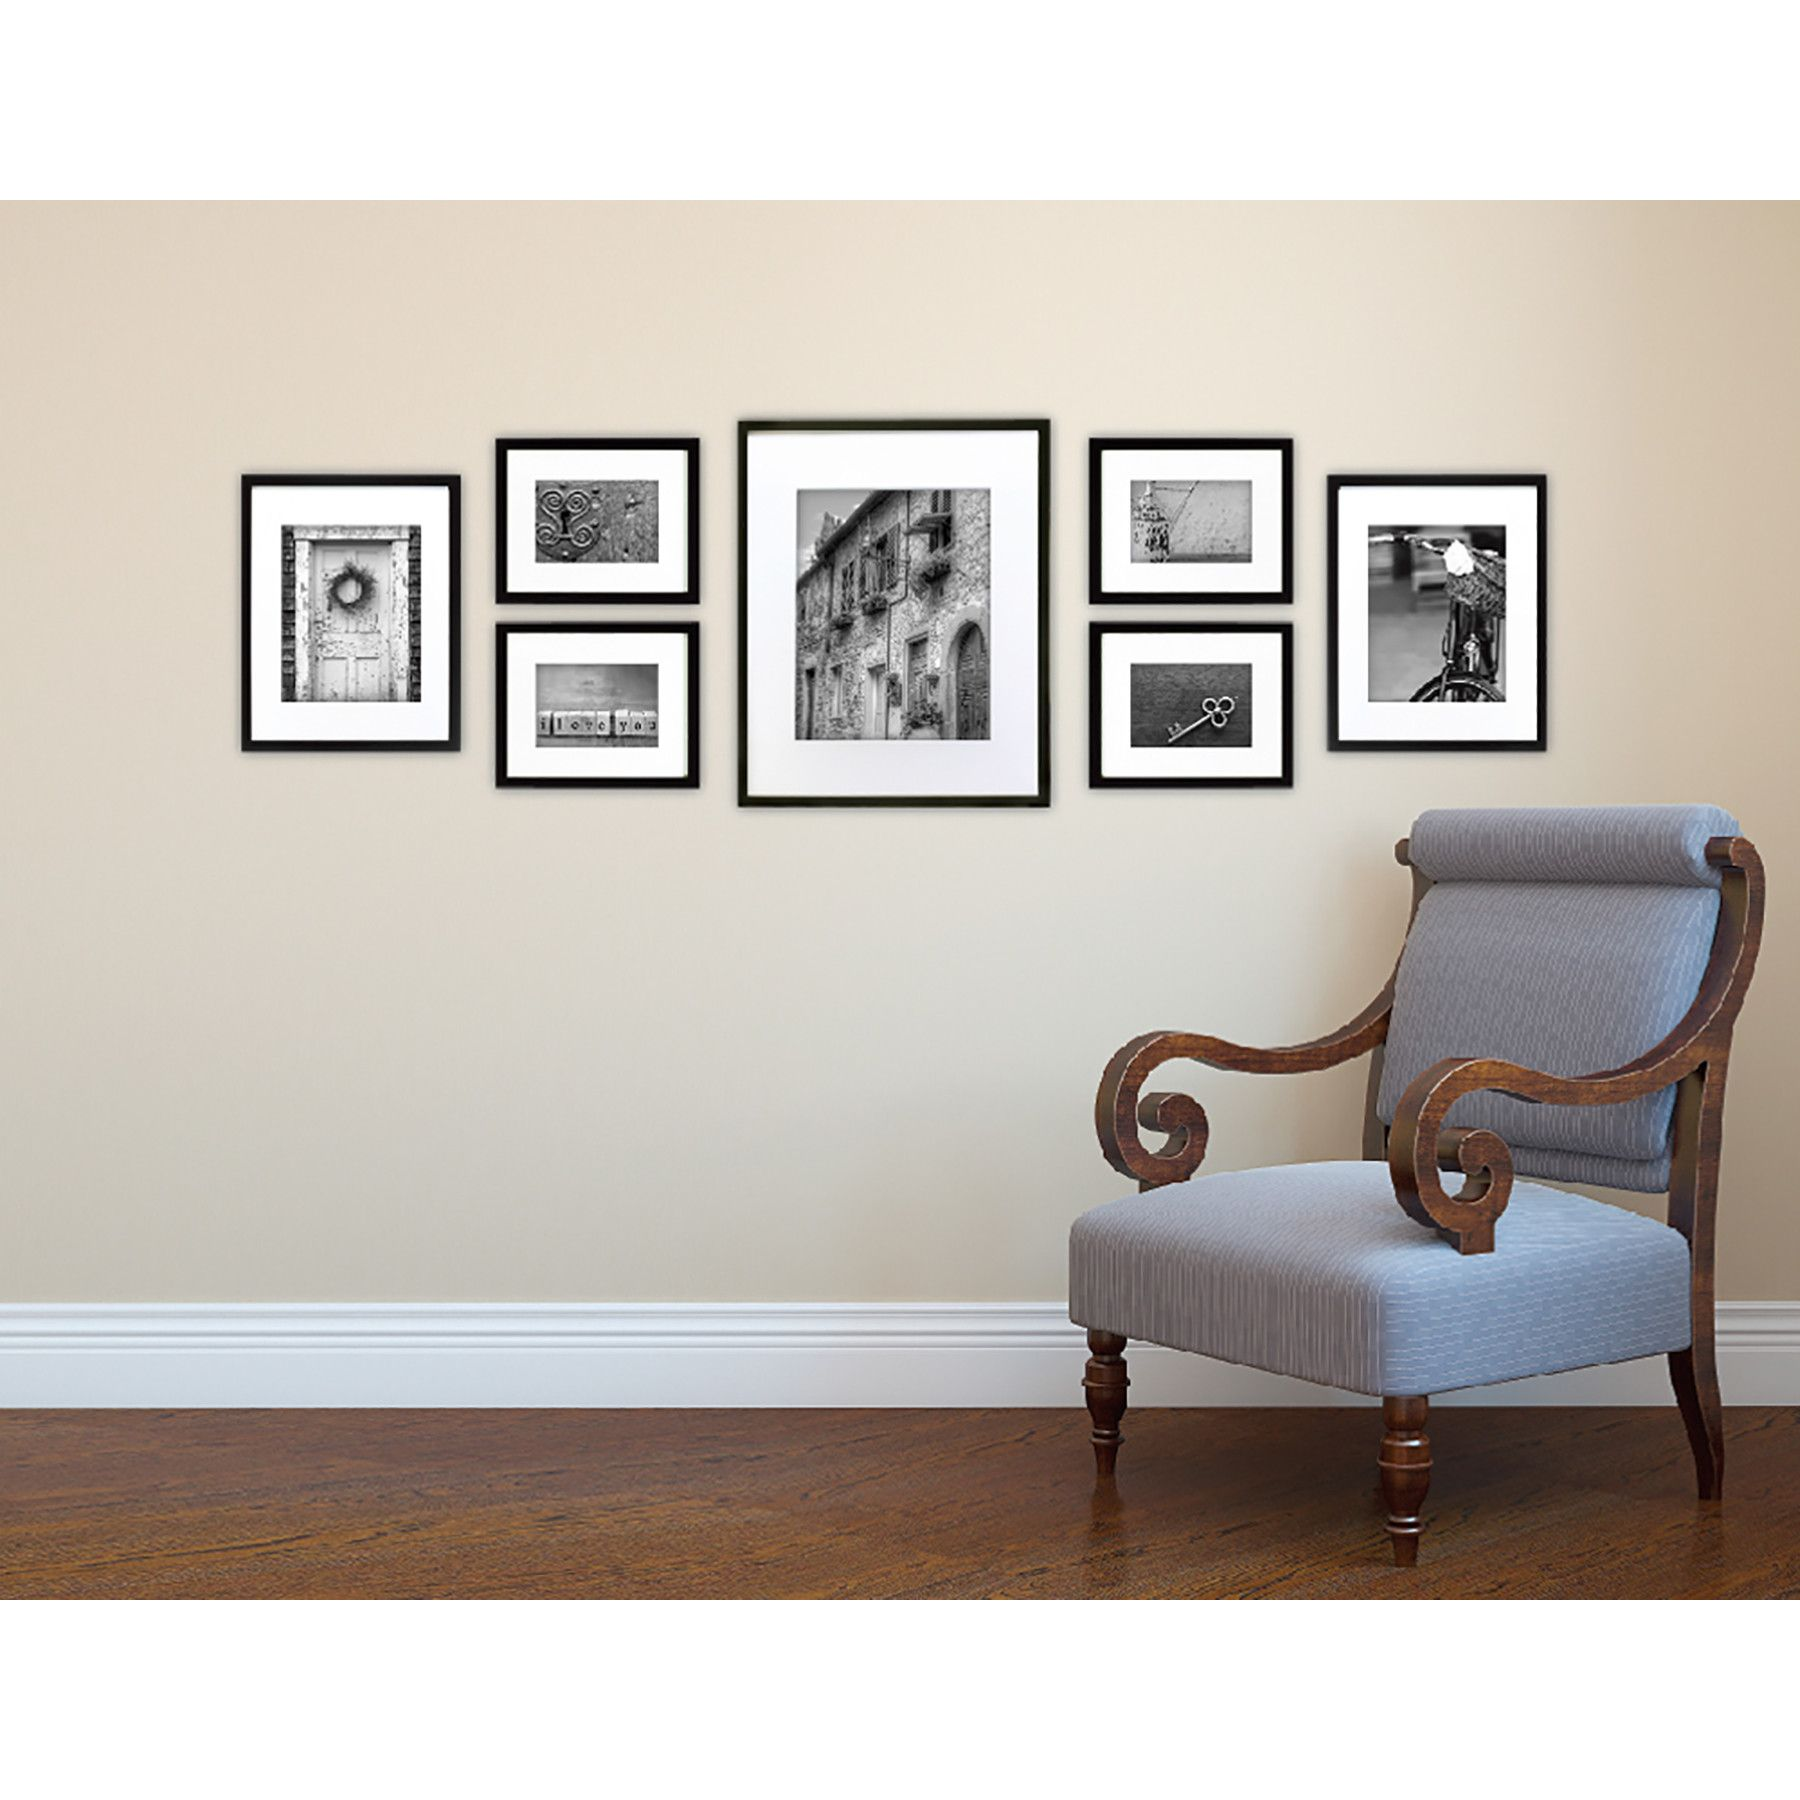 Explore Wall Frame Set, Picture Frame Sets, And More